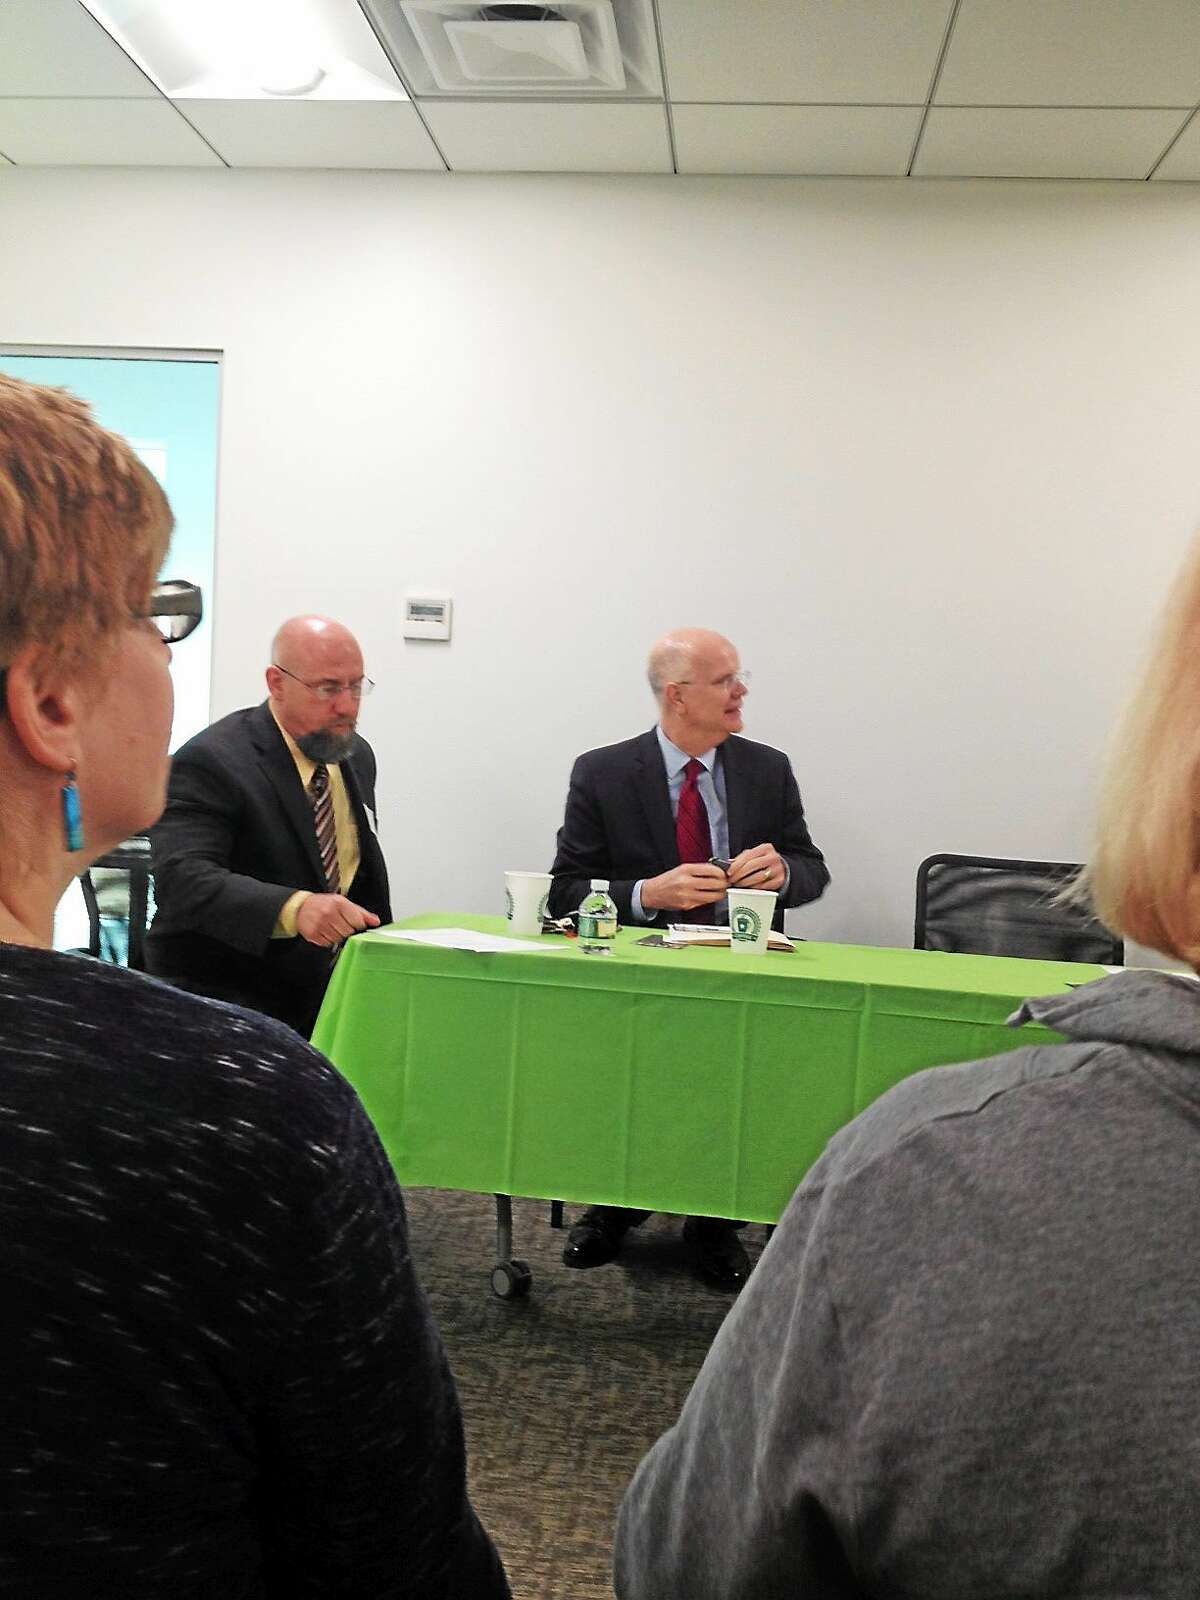 Connecticut State Comptroller Kevin Lembo, center, outlines his priorities for the year to members of the Middlesex County Chamber of Commerce in this March photo.